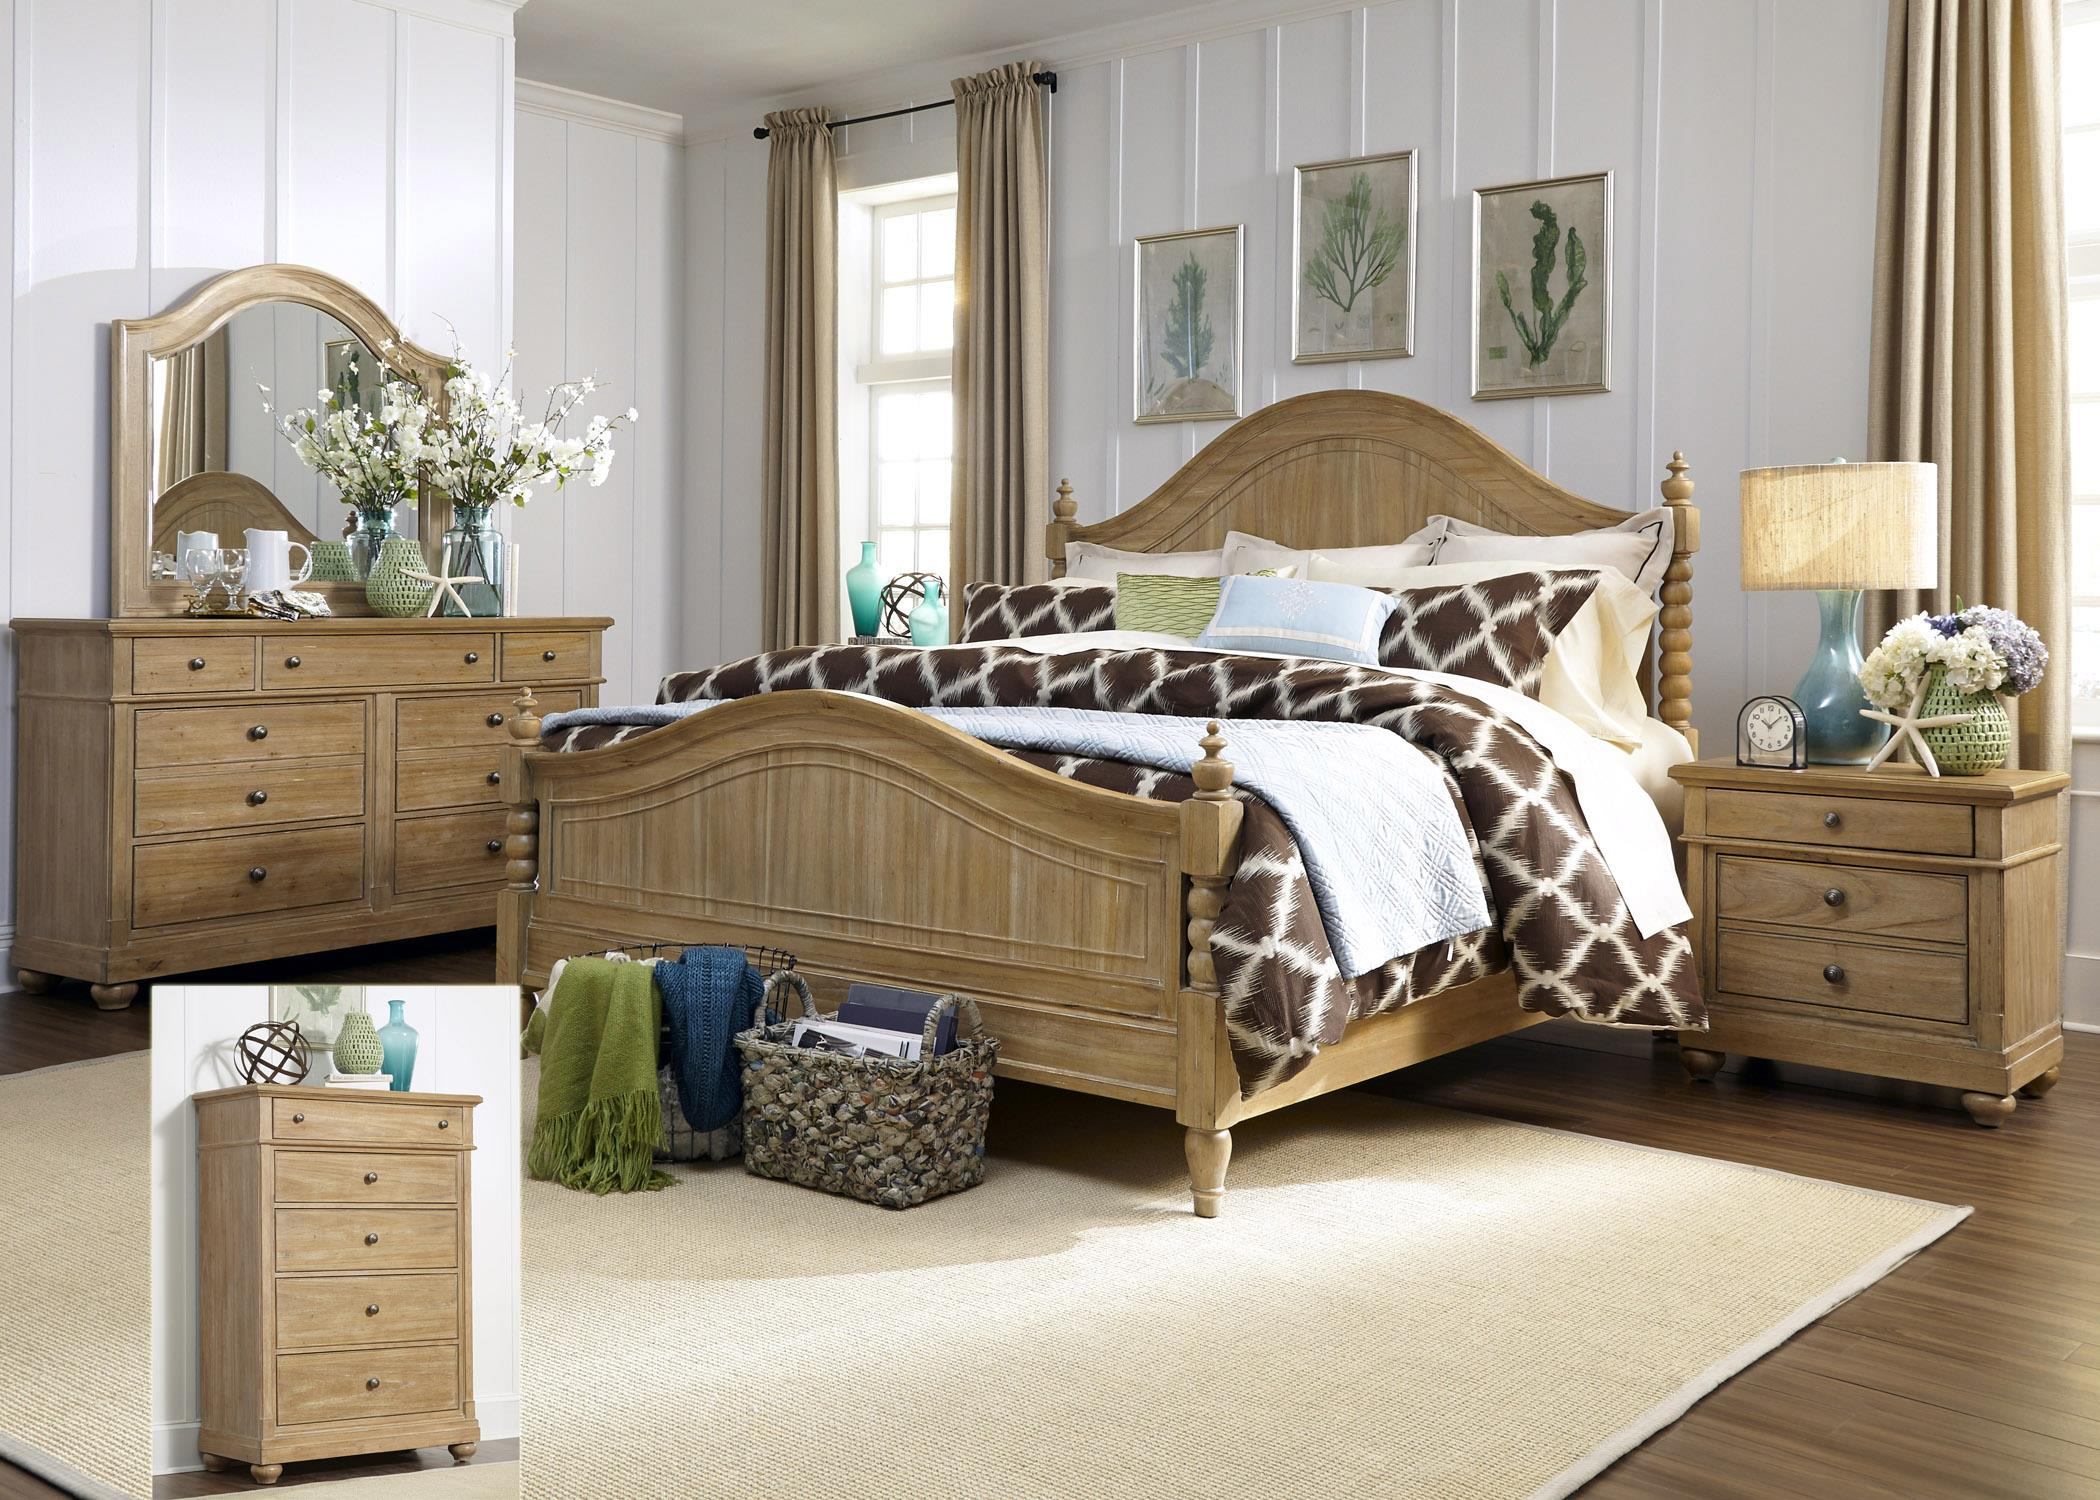 Liberty Furniture Harbor View King Bedroom Group - Item Number: 531-BR-KPSDMCN